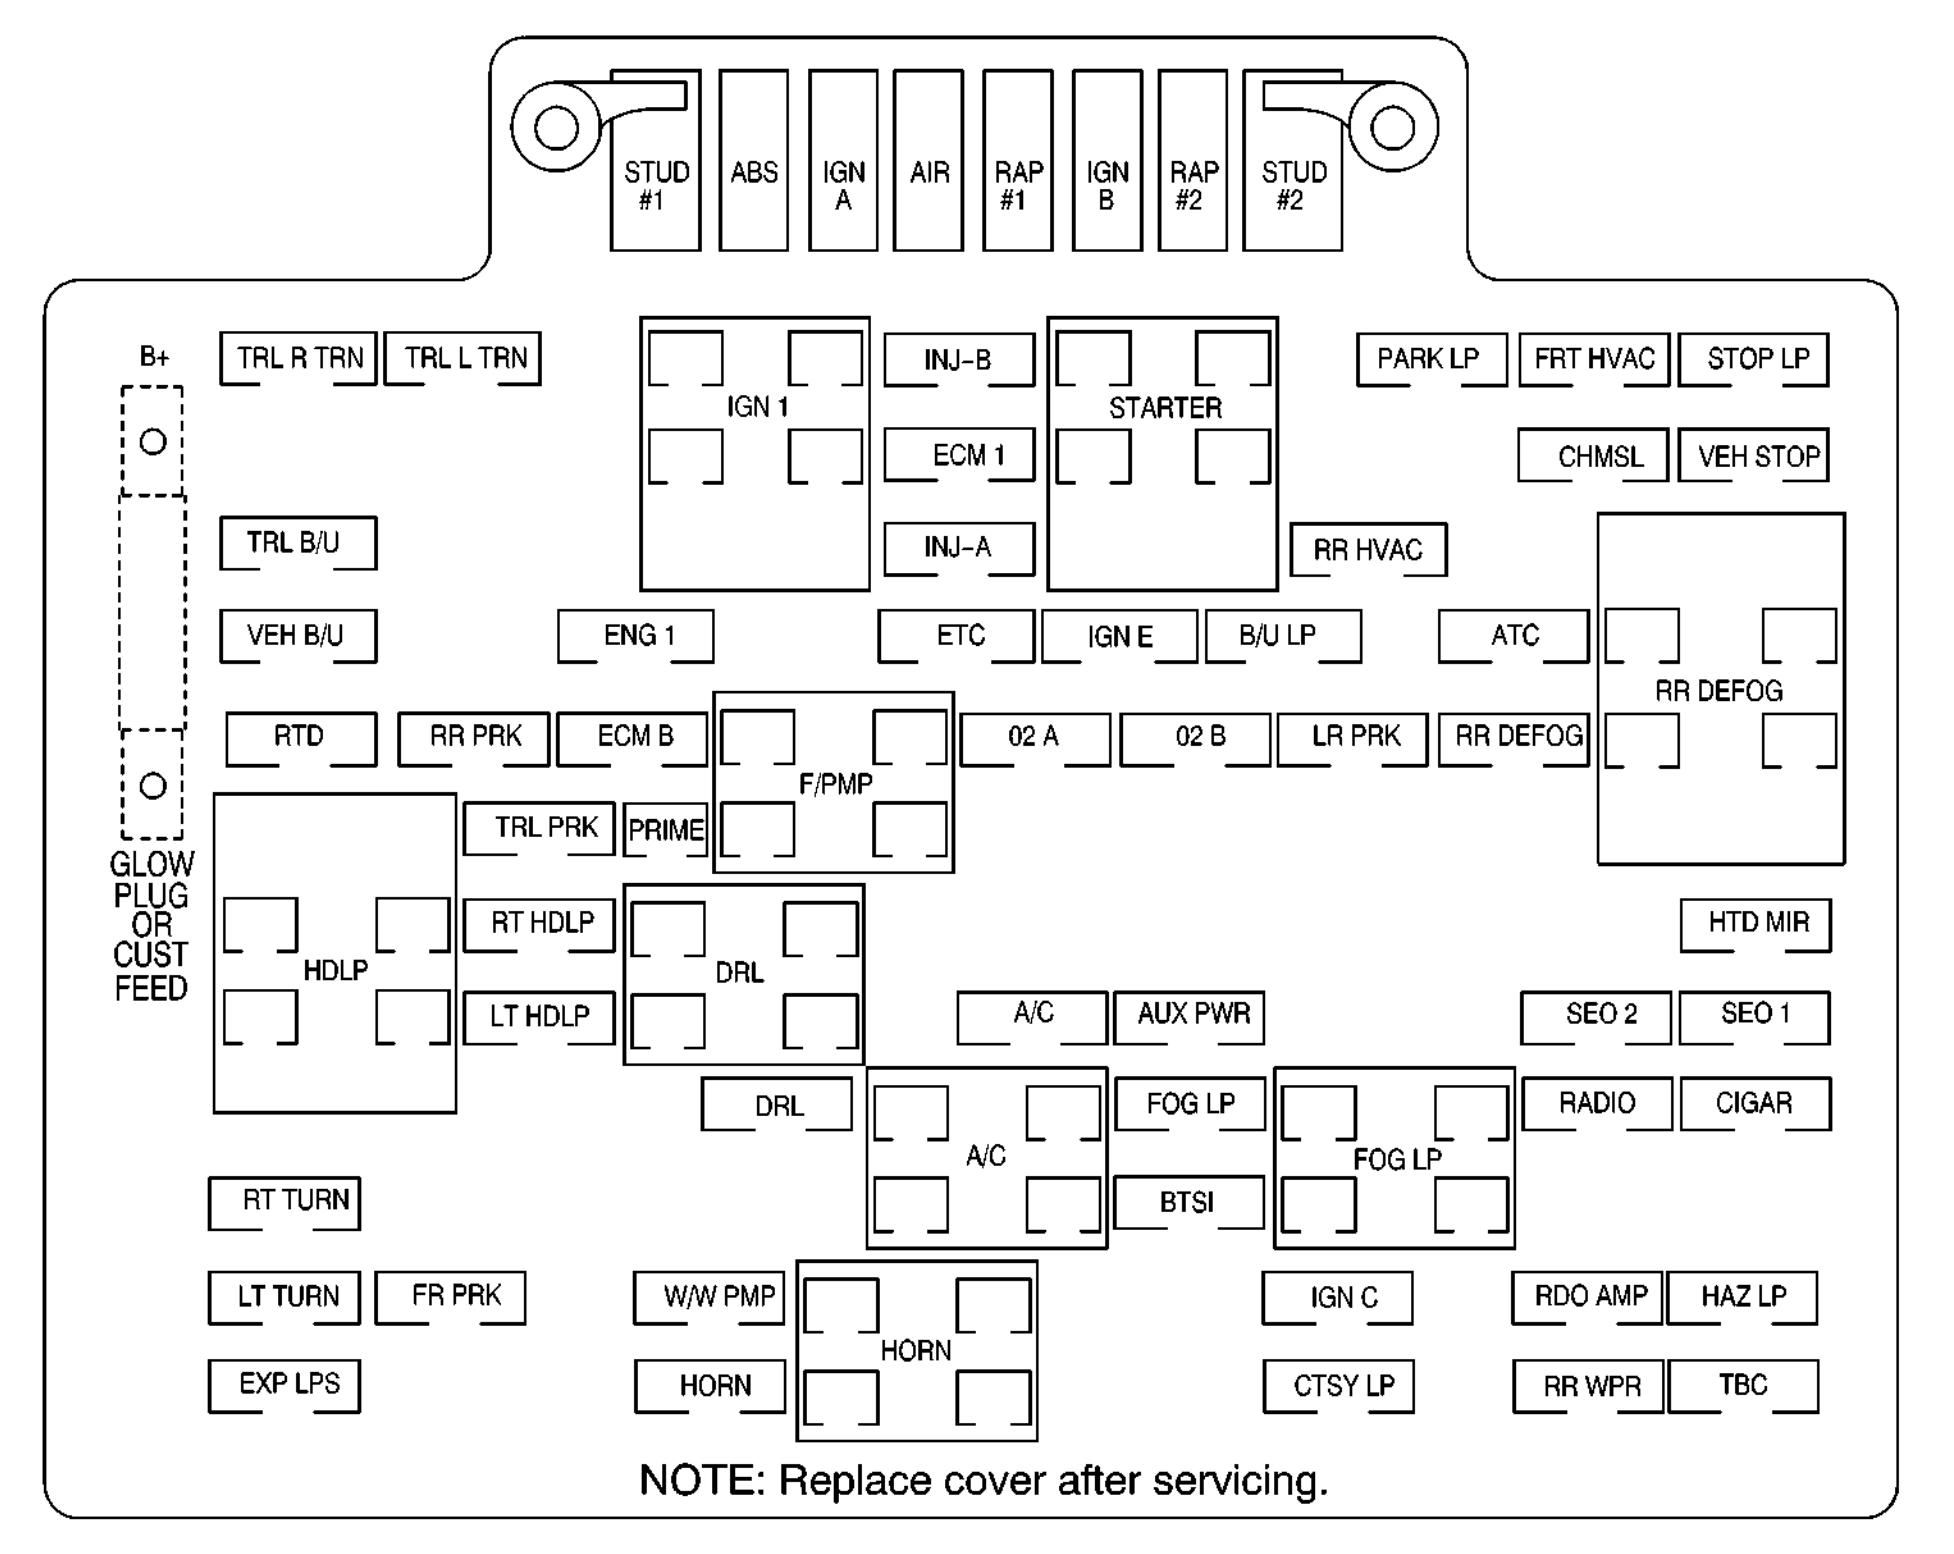 hight resolution of 2002 gmc yukon fuse diagrams wiring diagram long 2000 gmc sierra fuse box wiring diagram 2000 gmc yukon fuse panel diagram